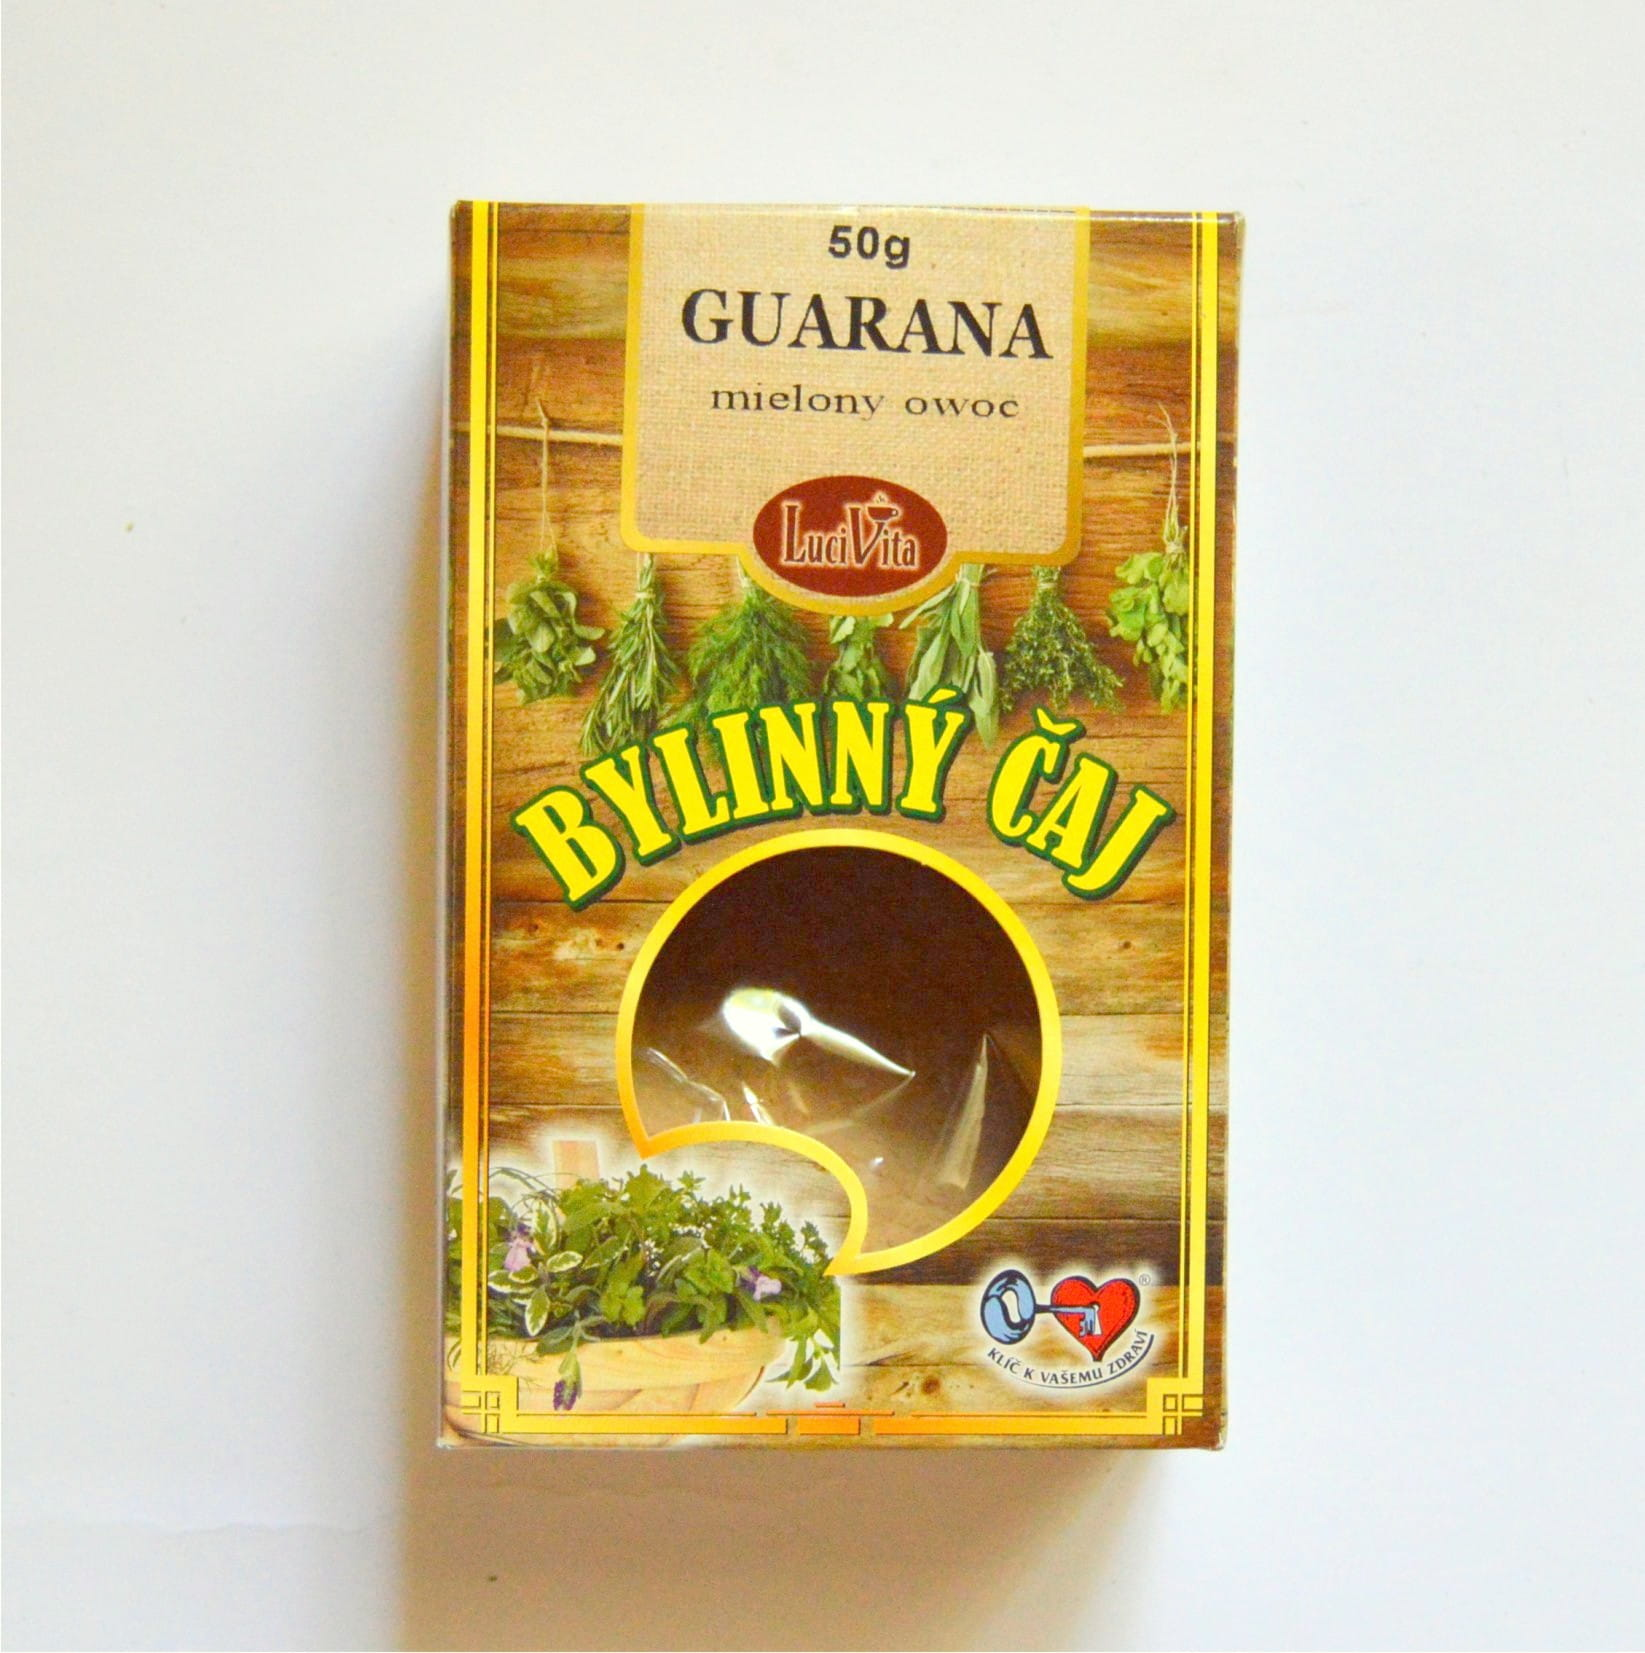 Guarana - powdered fruit - 50g